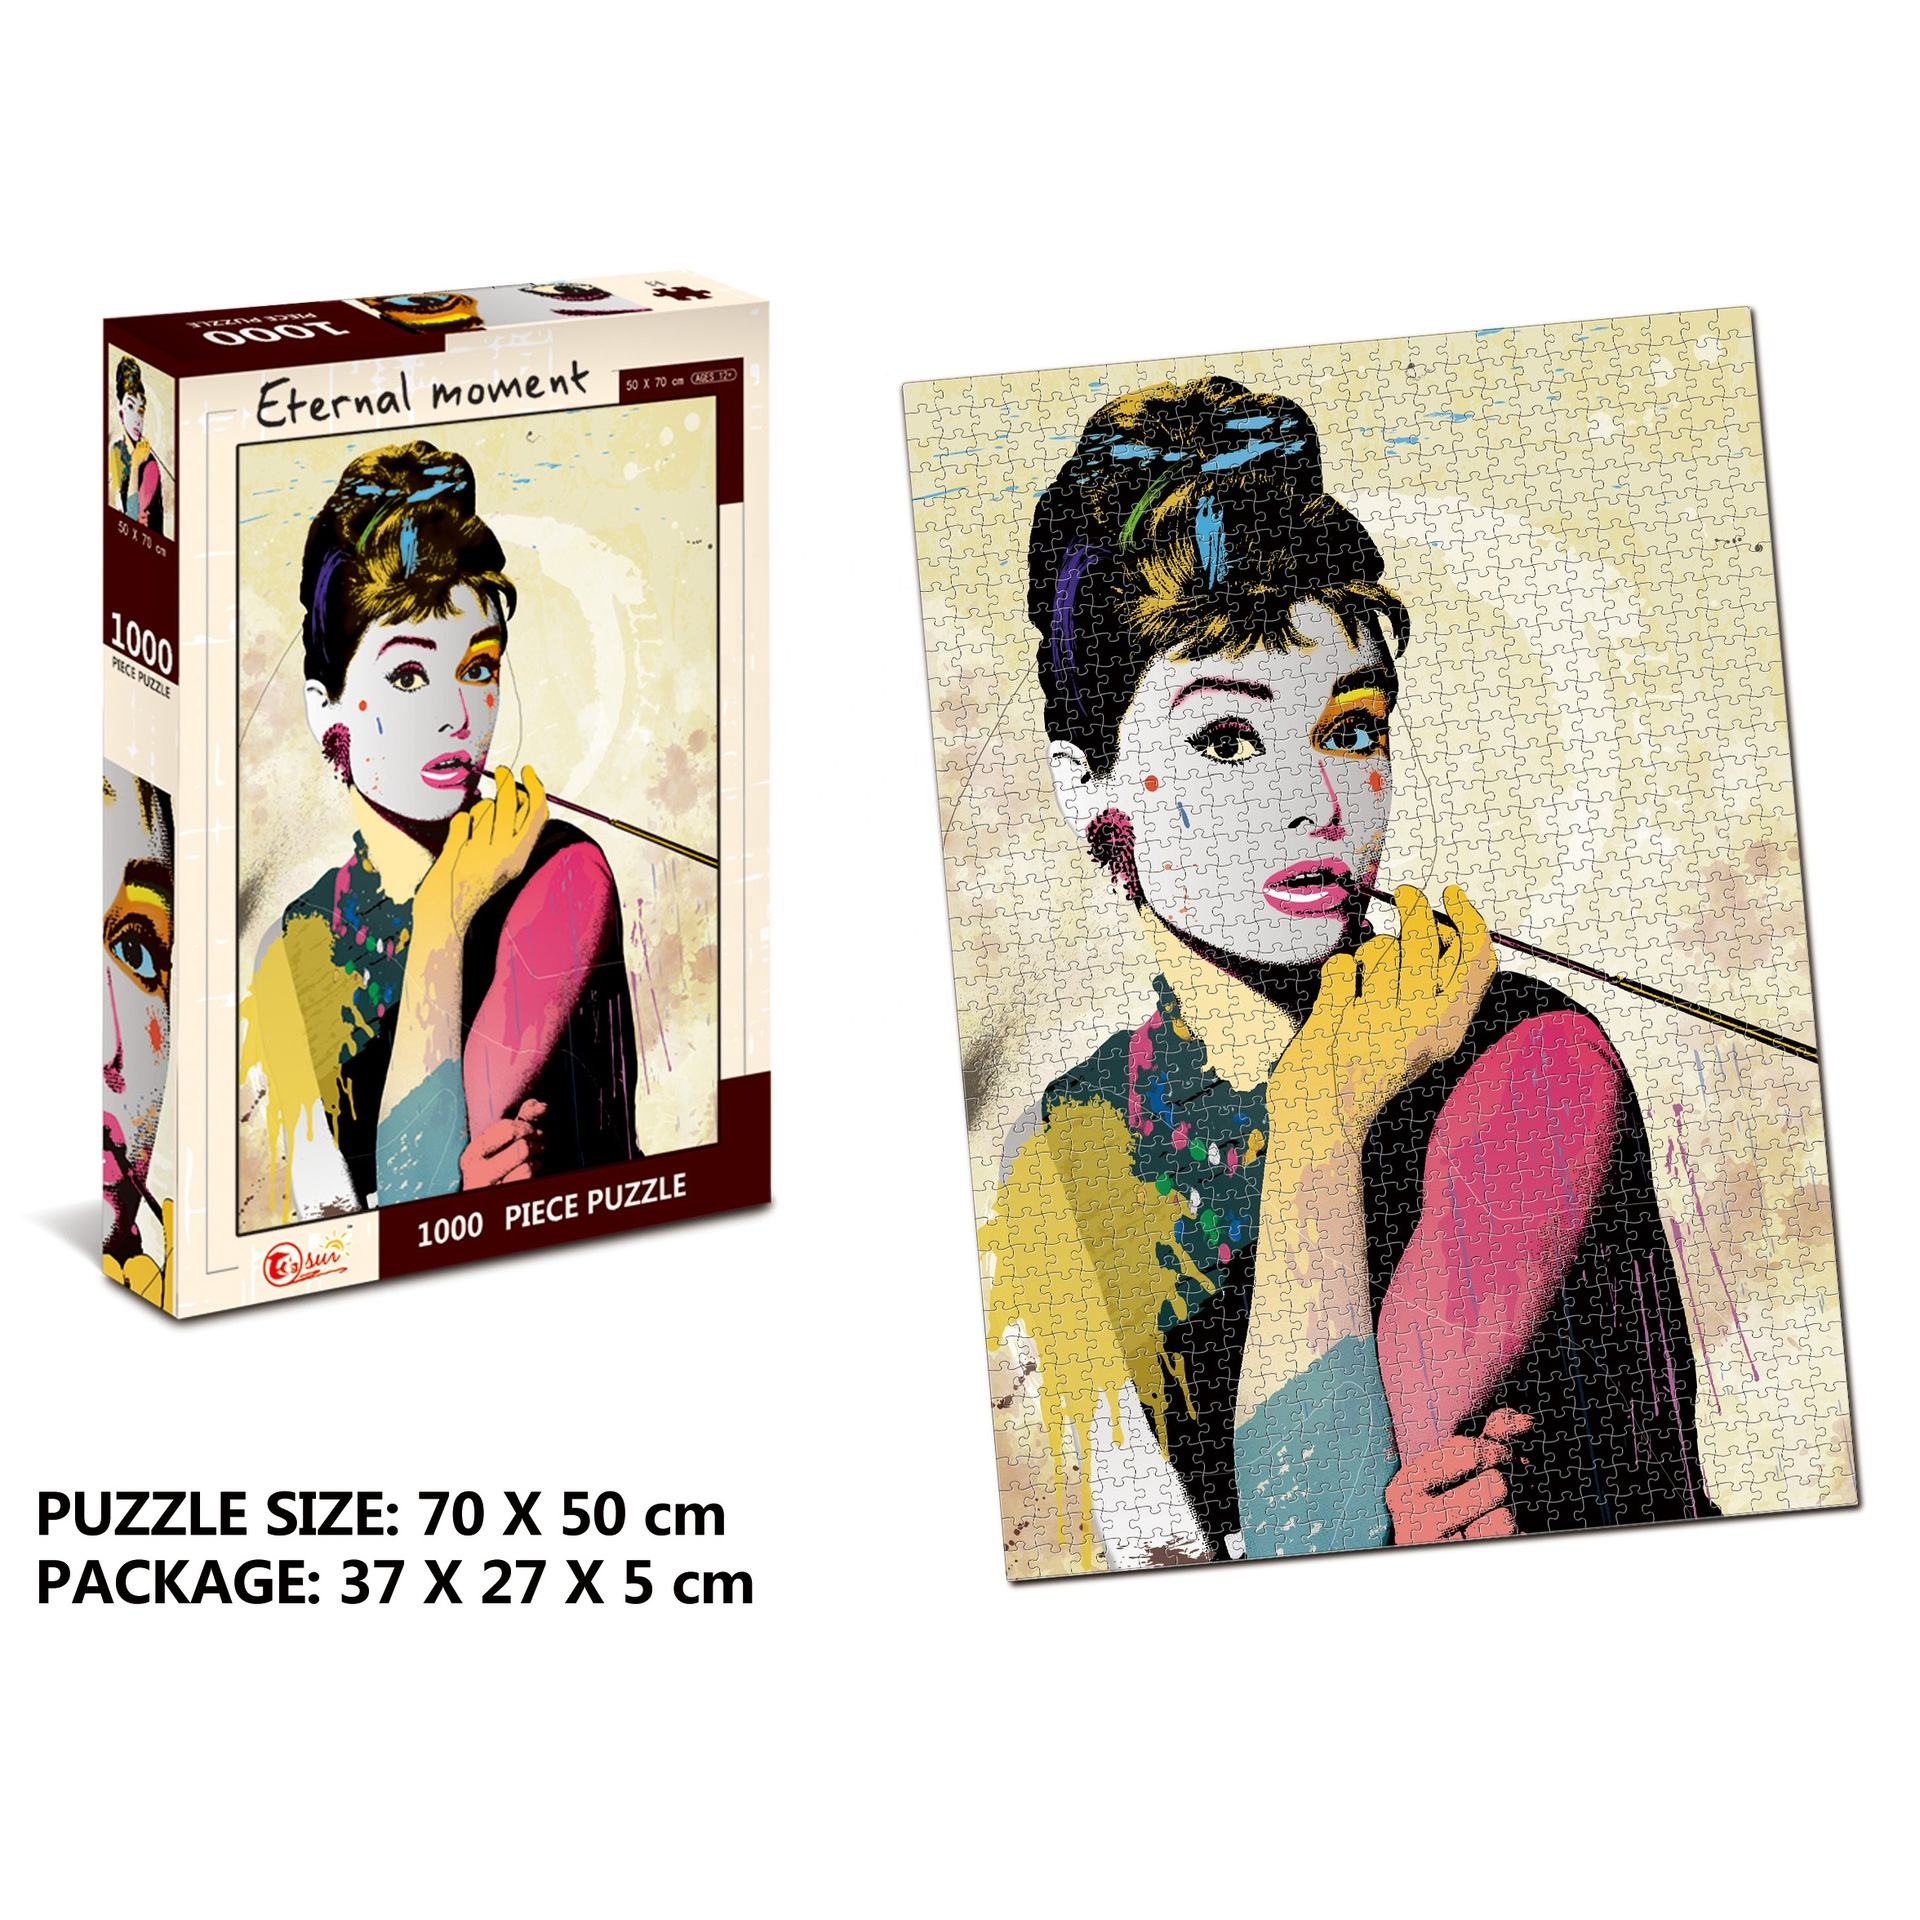 Mdf Puzzle Print Sublimation Blanks Puzzles 1000 Large Puzzle Paper Board Custom Sublimation Print Blank Educational Toys MDF Wooden Jigsaw Puzzle For Kid Family Event Gift